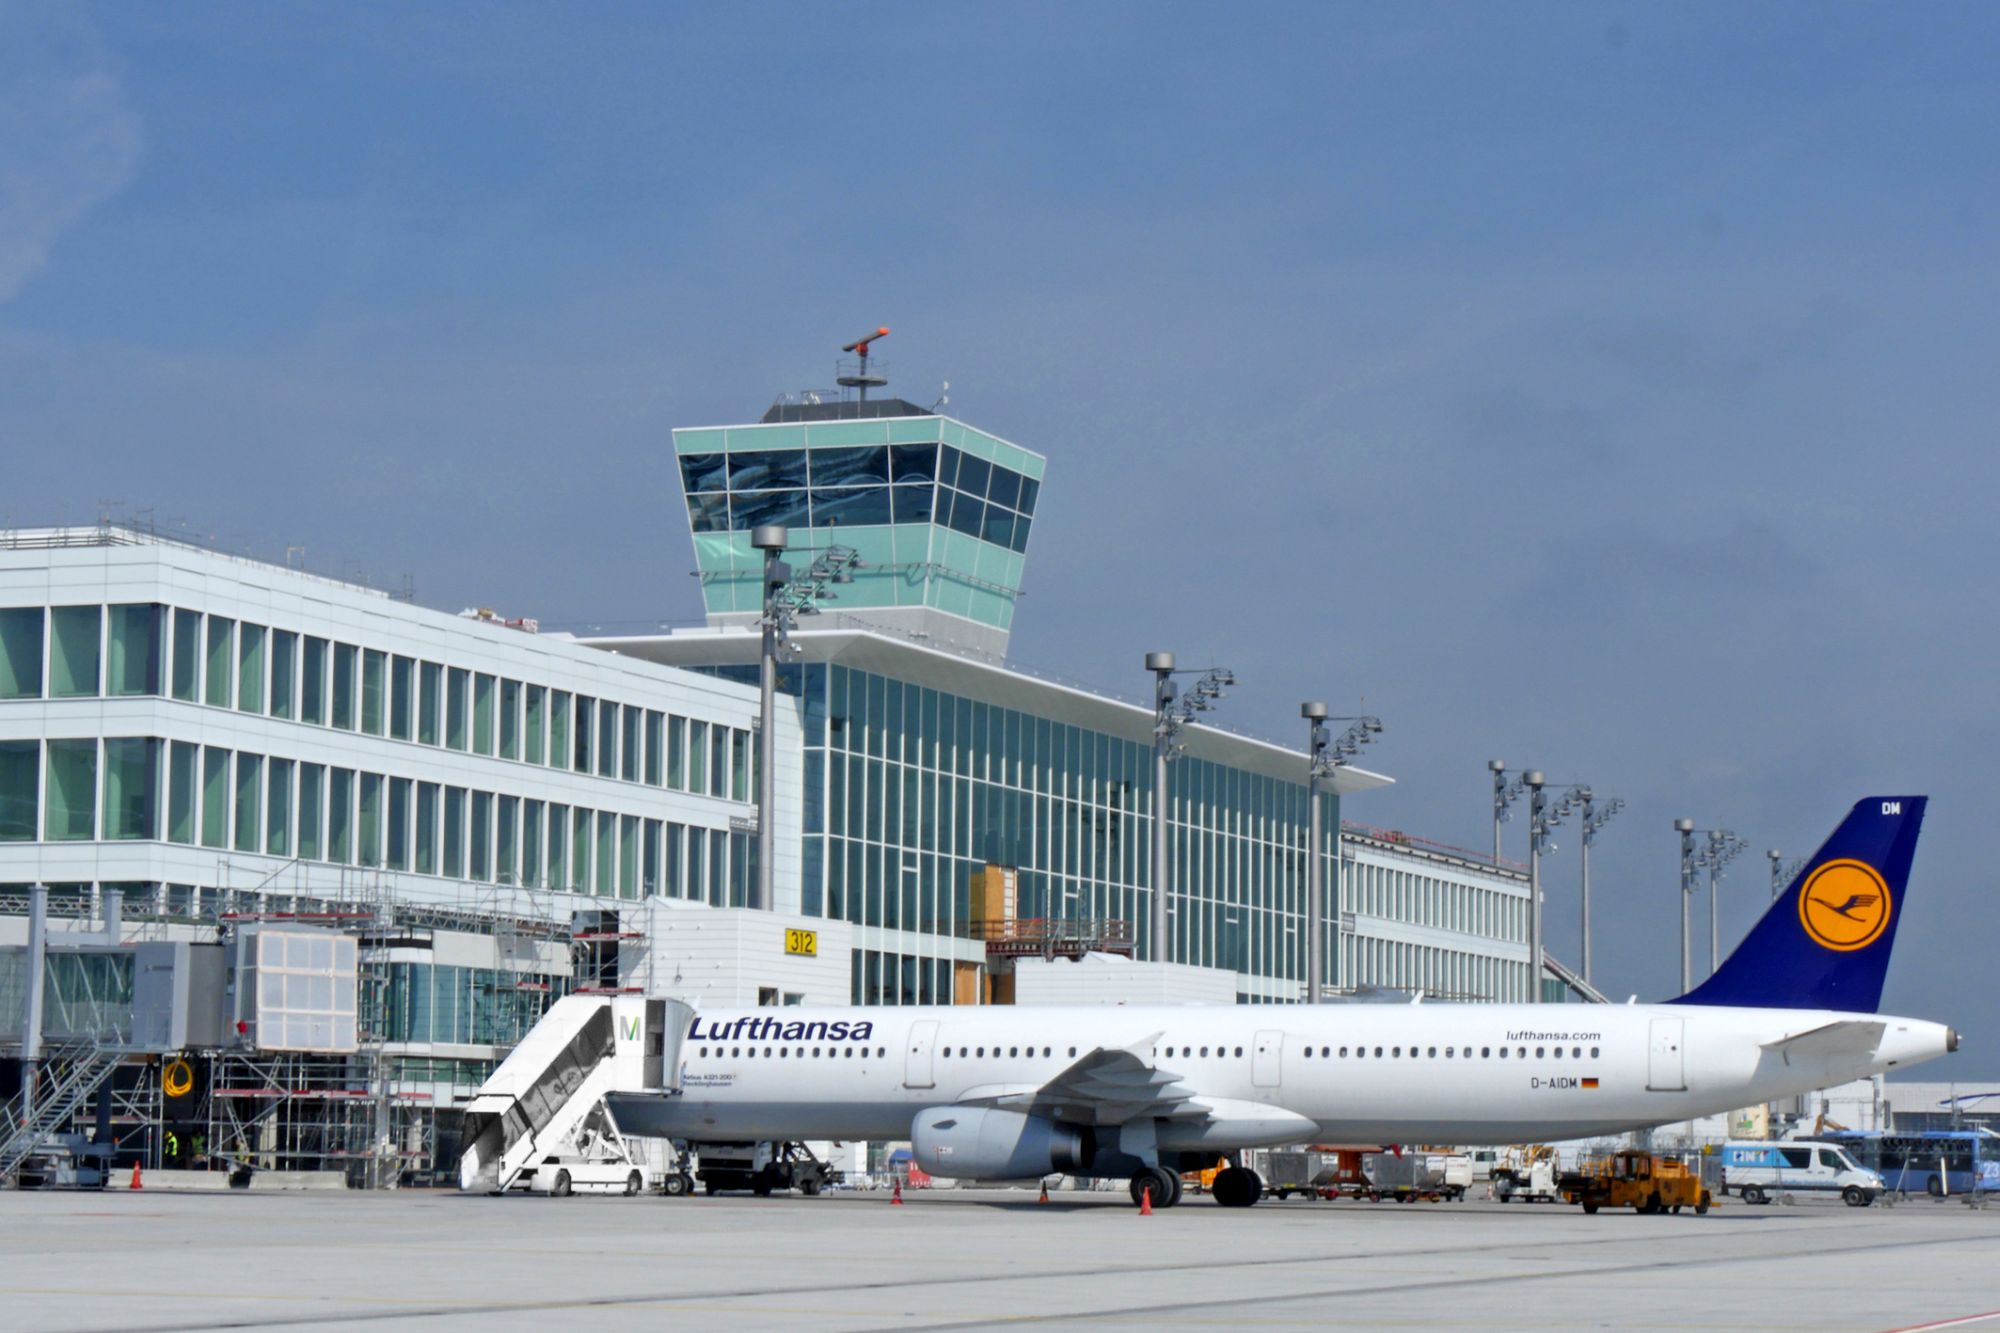 Observations and Thoughts during My Day of Testing Munich's Terminal 2 Satellite